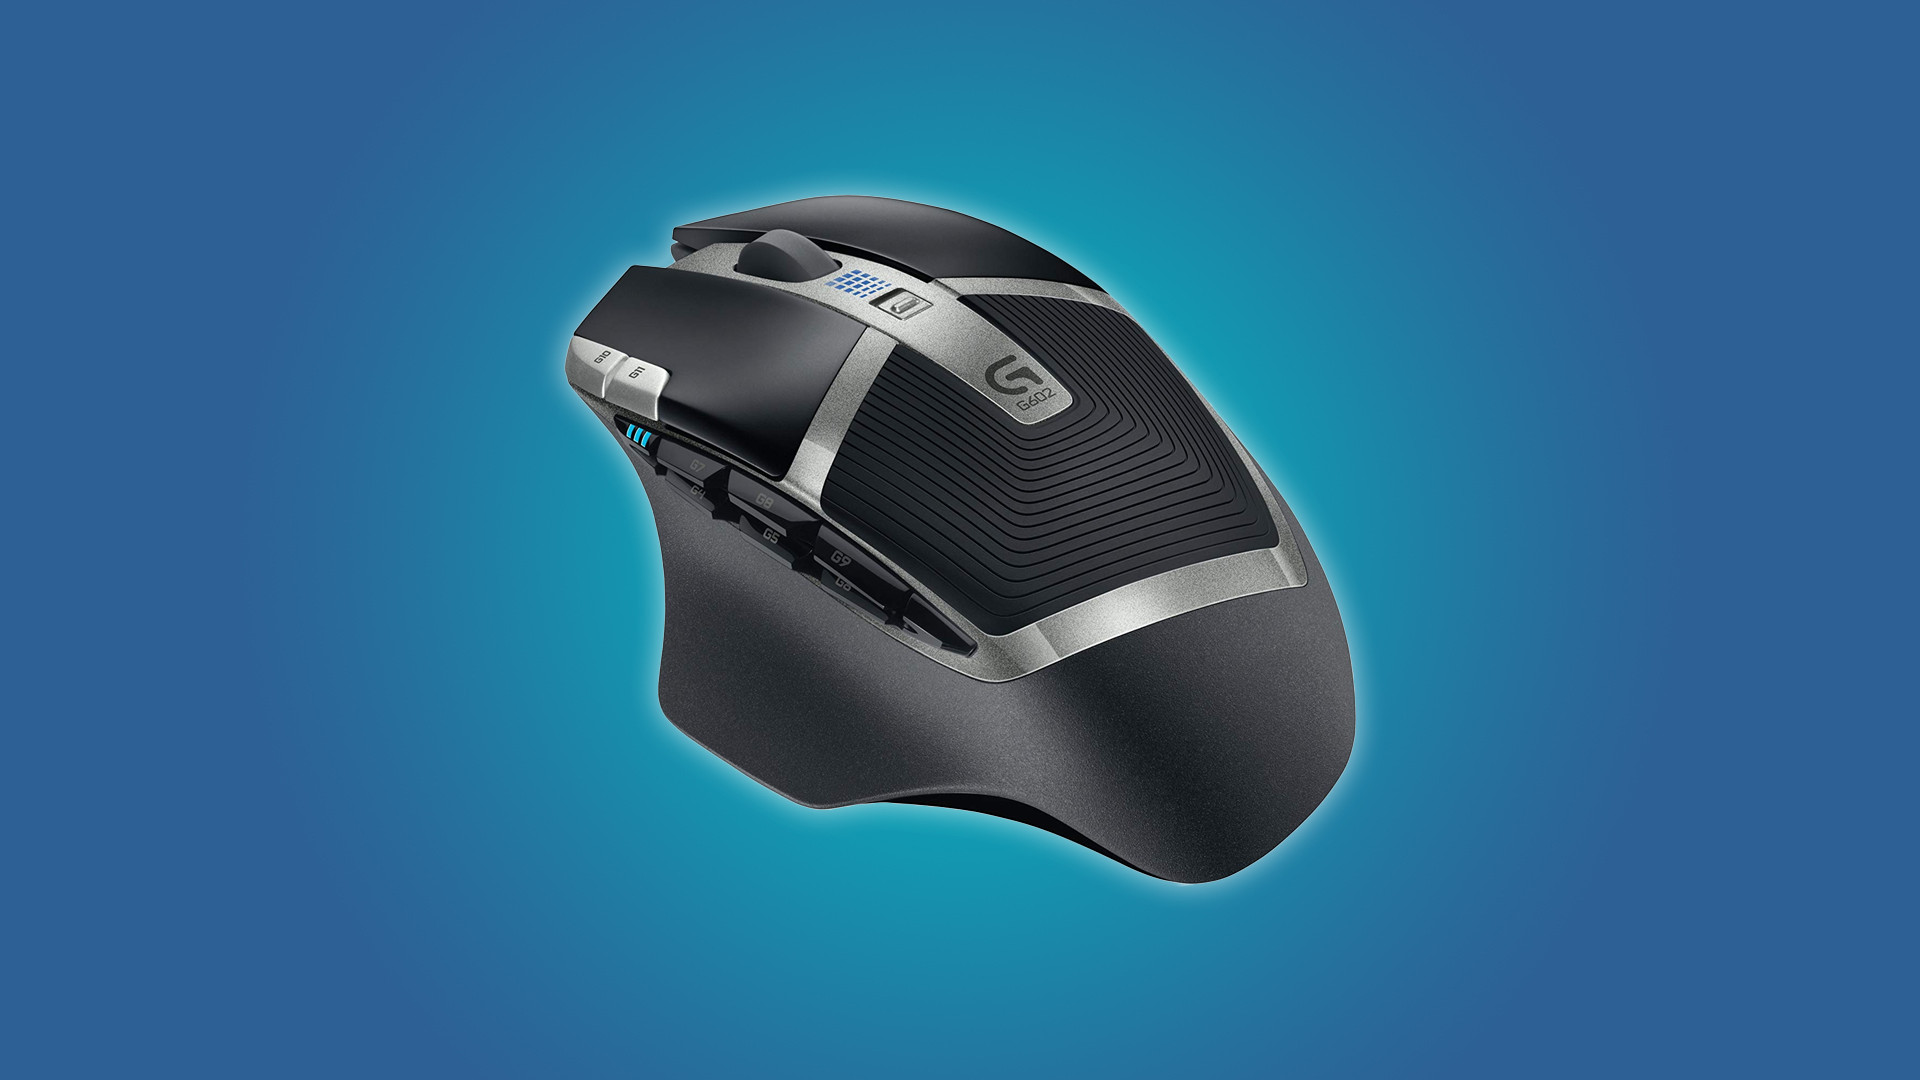 Deal Alert: Score a Logitech G602 Wireless Gaming Mouse for Just $25